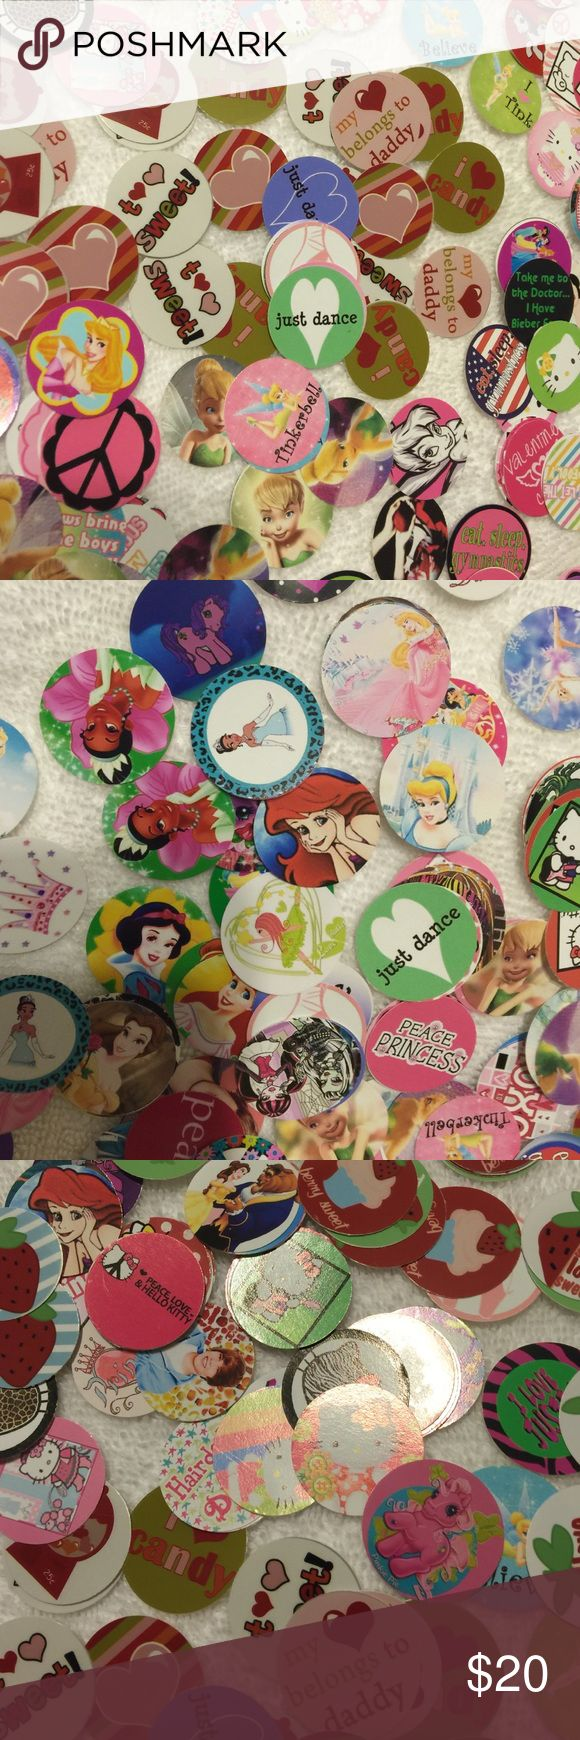 Bottle Cap Images (PRECUT) All brand new pre-cut images, includes over 100 images including tinker bell, gymnastics, hello kitty, cupcakes, peace signs, dance, daddy's girl, my little pony, dolphins, bratz, Snow White, princesses, kitties, cheetah print and more.. Also includes 50+bottle caps - total pieces over 200!!! Accessories Jewelry